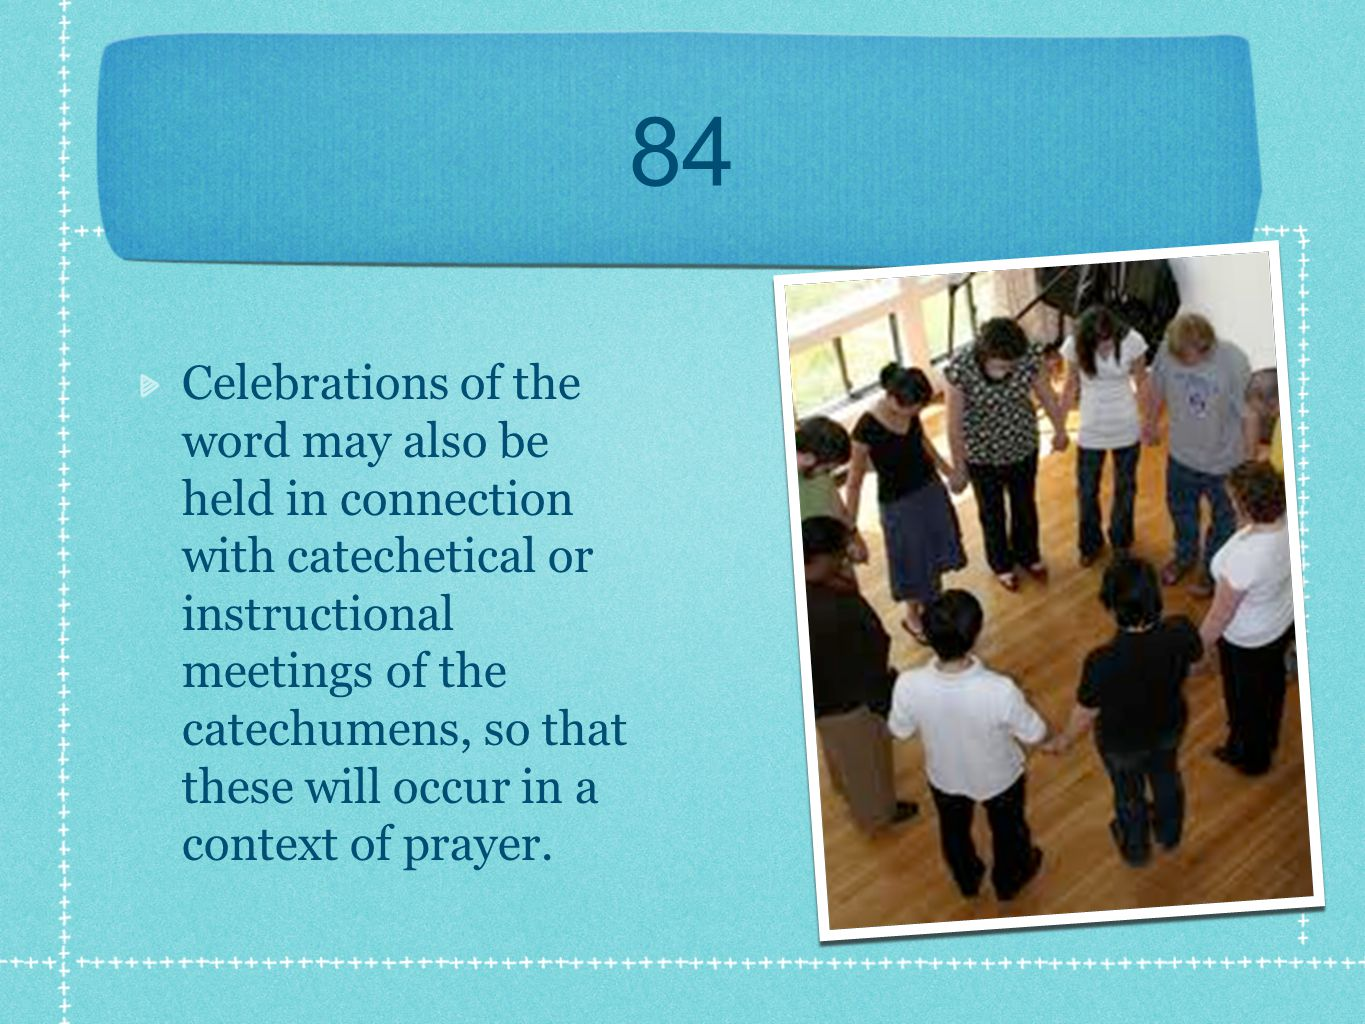 84 Celebrations of the word may also be held in connection with catechetical or instructional meetings of the catechumens, so that these will occur in a context of prayer.